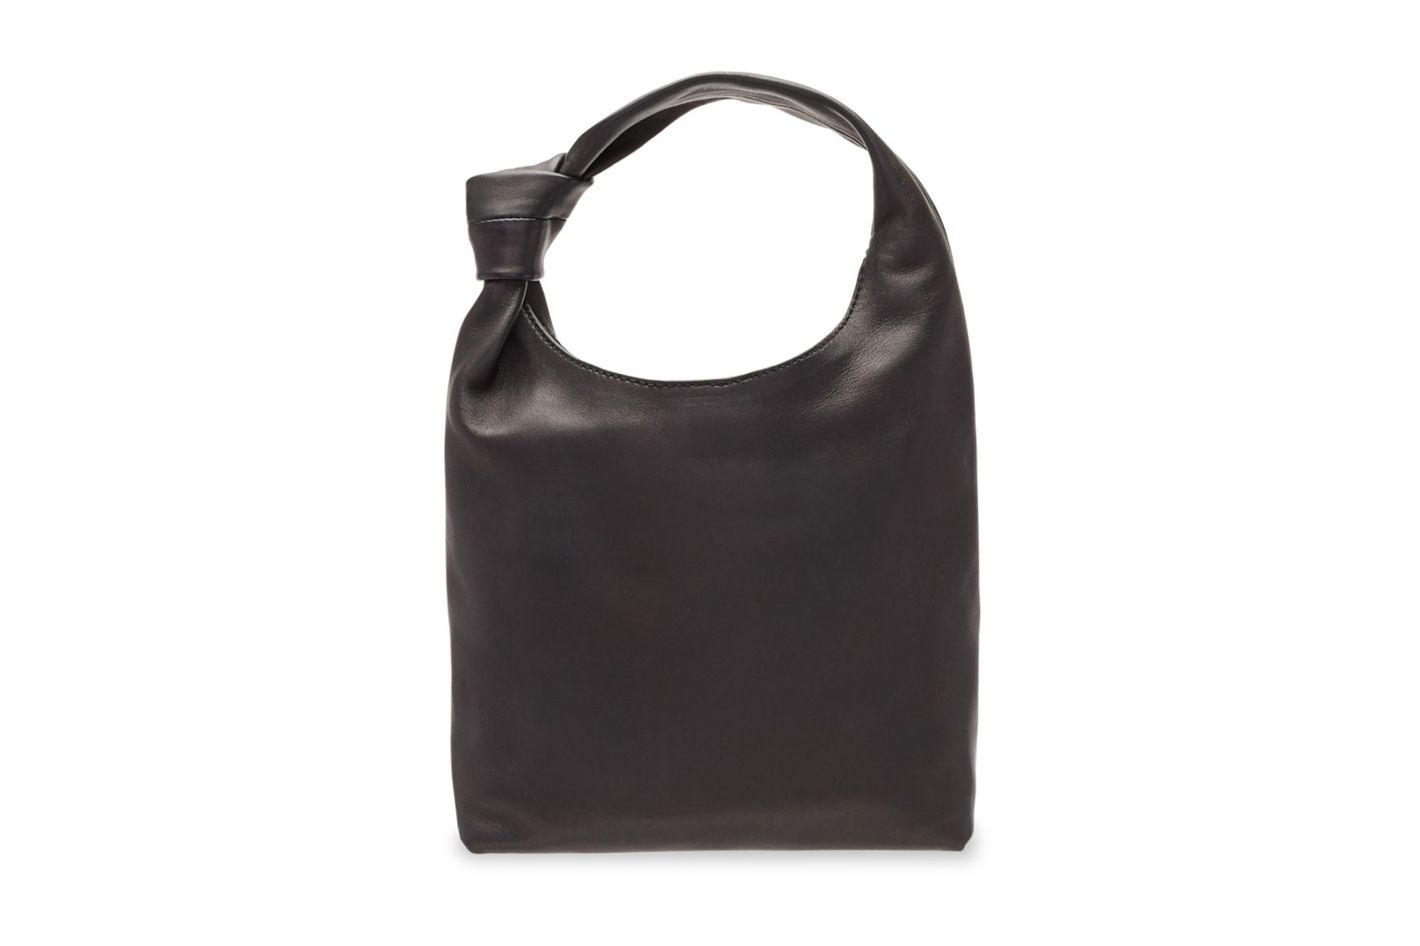 Loeffler Randall Leather Knot Tote